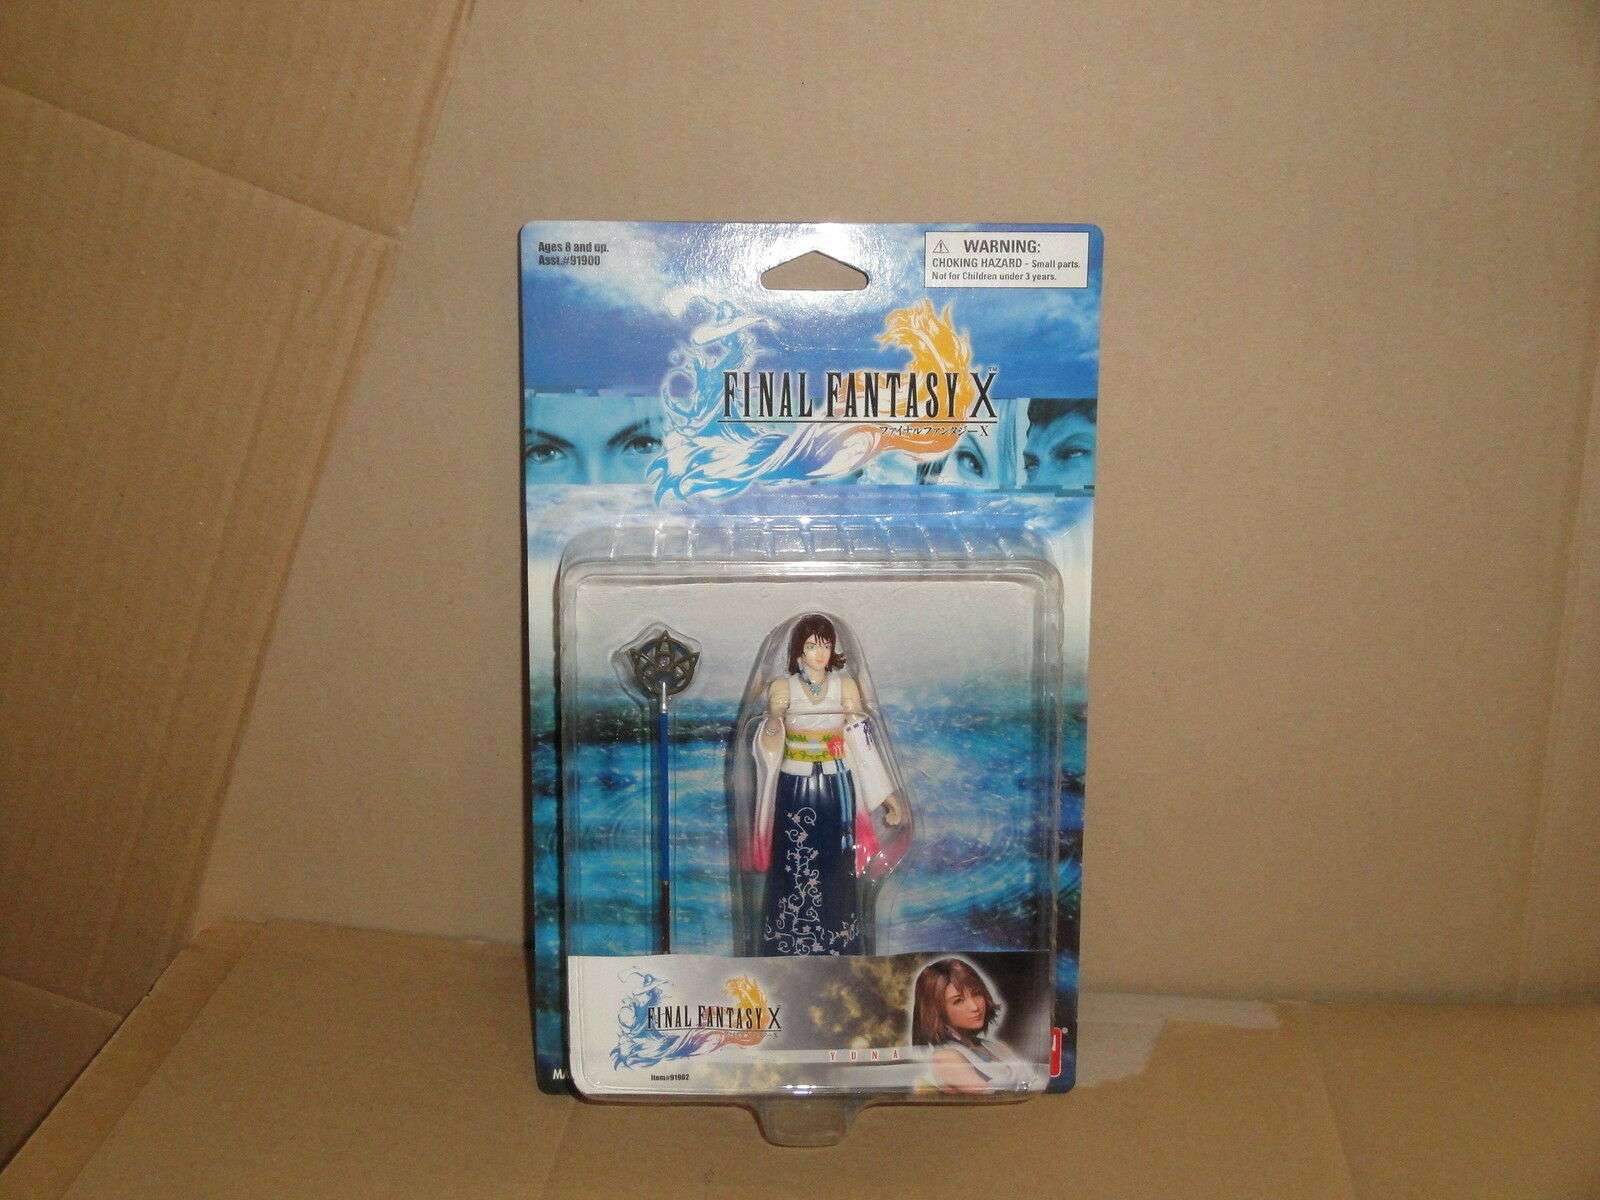 YUNA BY FINAL FANTASY 10 X ACTION FIGURE ASST  91902 BY BANDAI NEW IN BOX